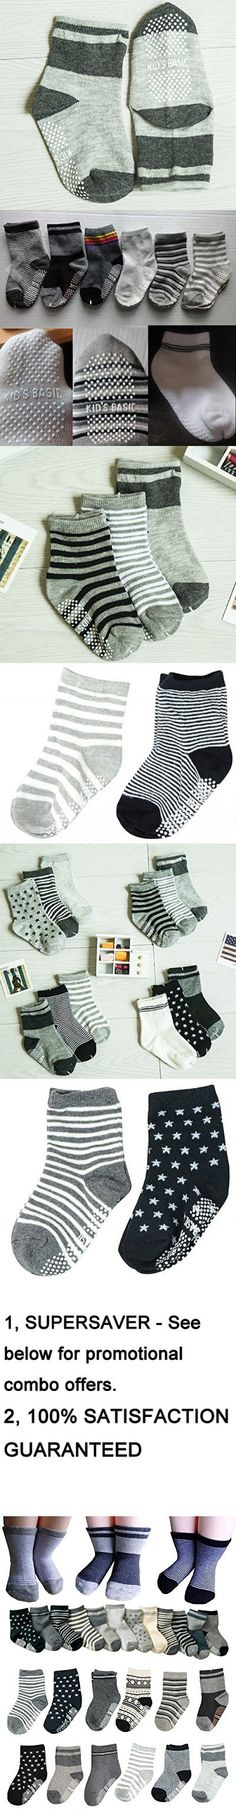 BS® 6 Pairs 2-3 Years Baby Boys Toddler Anti Slip Skid Slipper Stretch Knit Socks + Gift bag + Gift Card, Stripes Star Footsocks sneakers Socks, Sole Length 3.9inch - 4.7inch